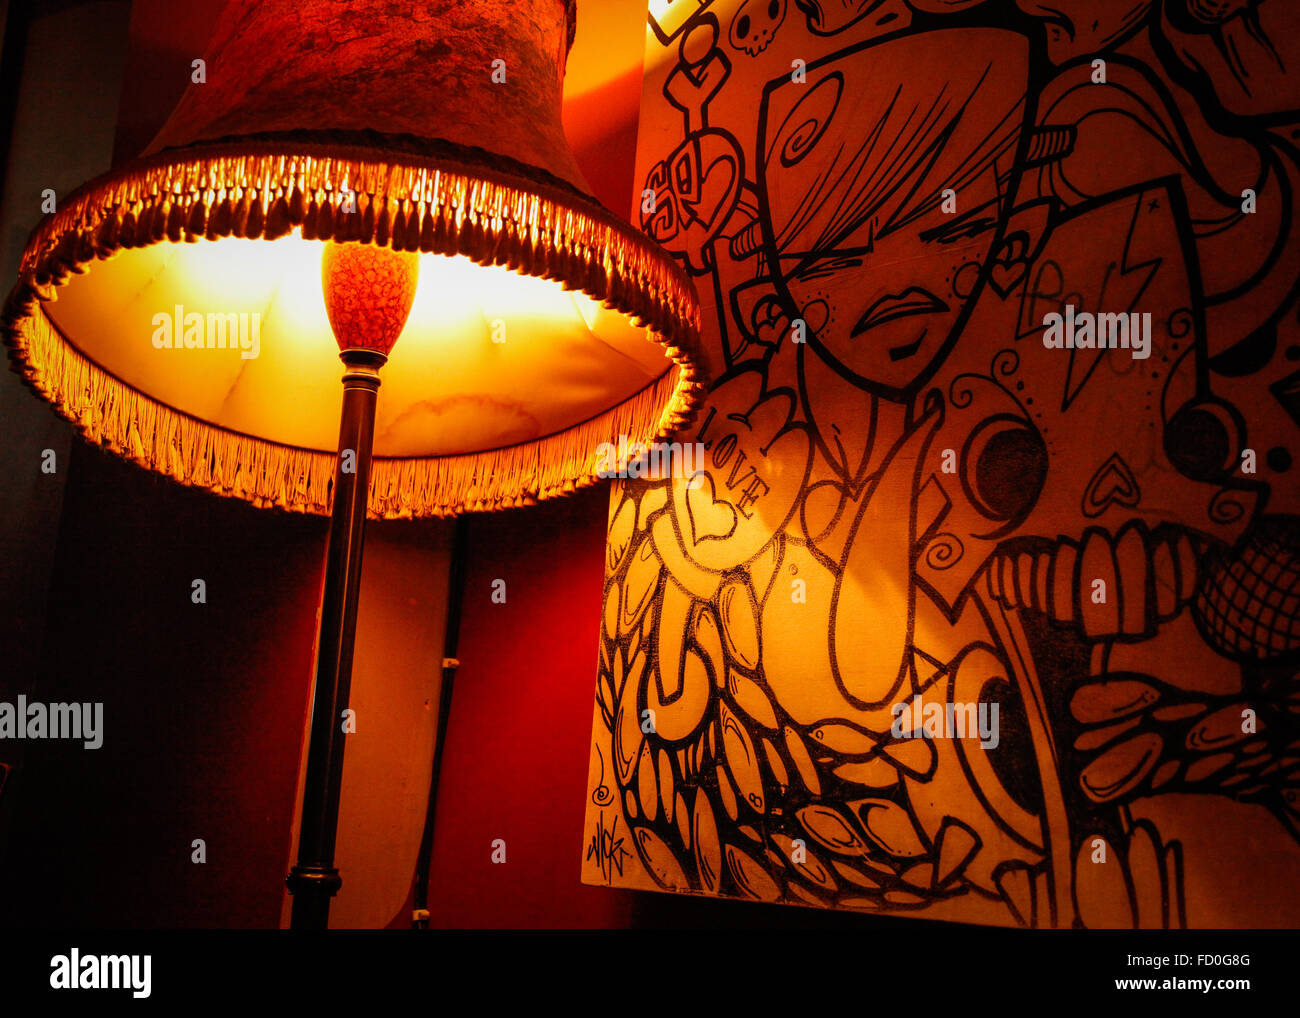 Warm cosy atmosphere + Love art in pub in Stokes Croft, Bristol, England - Stock Image